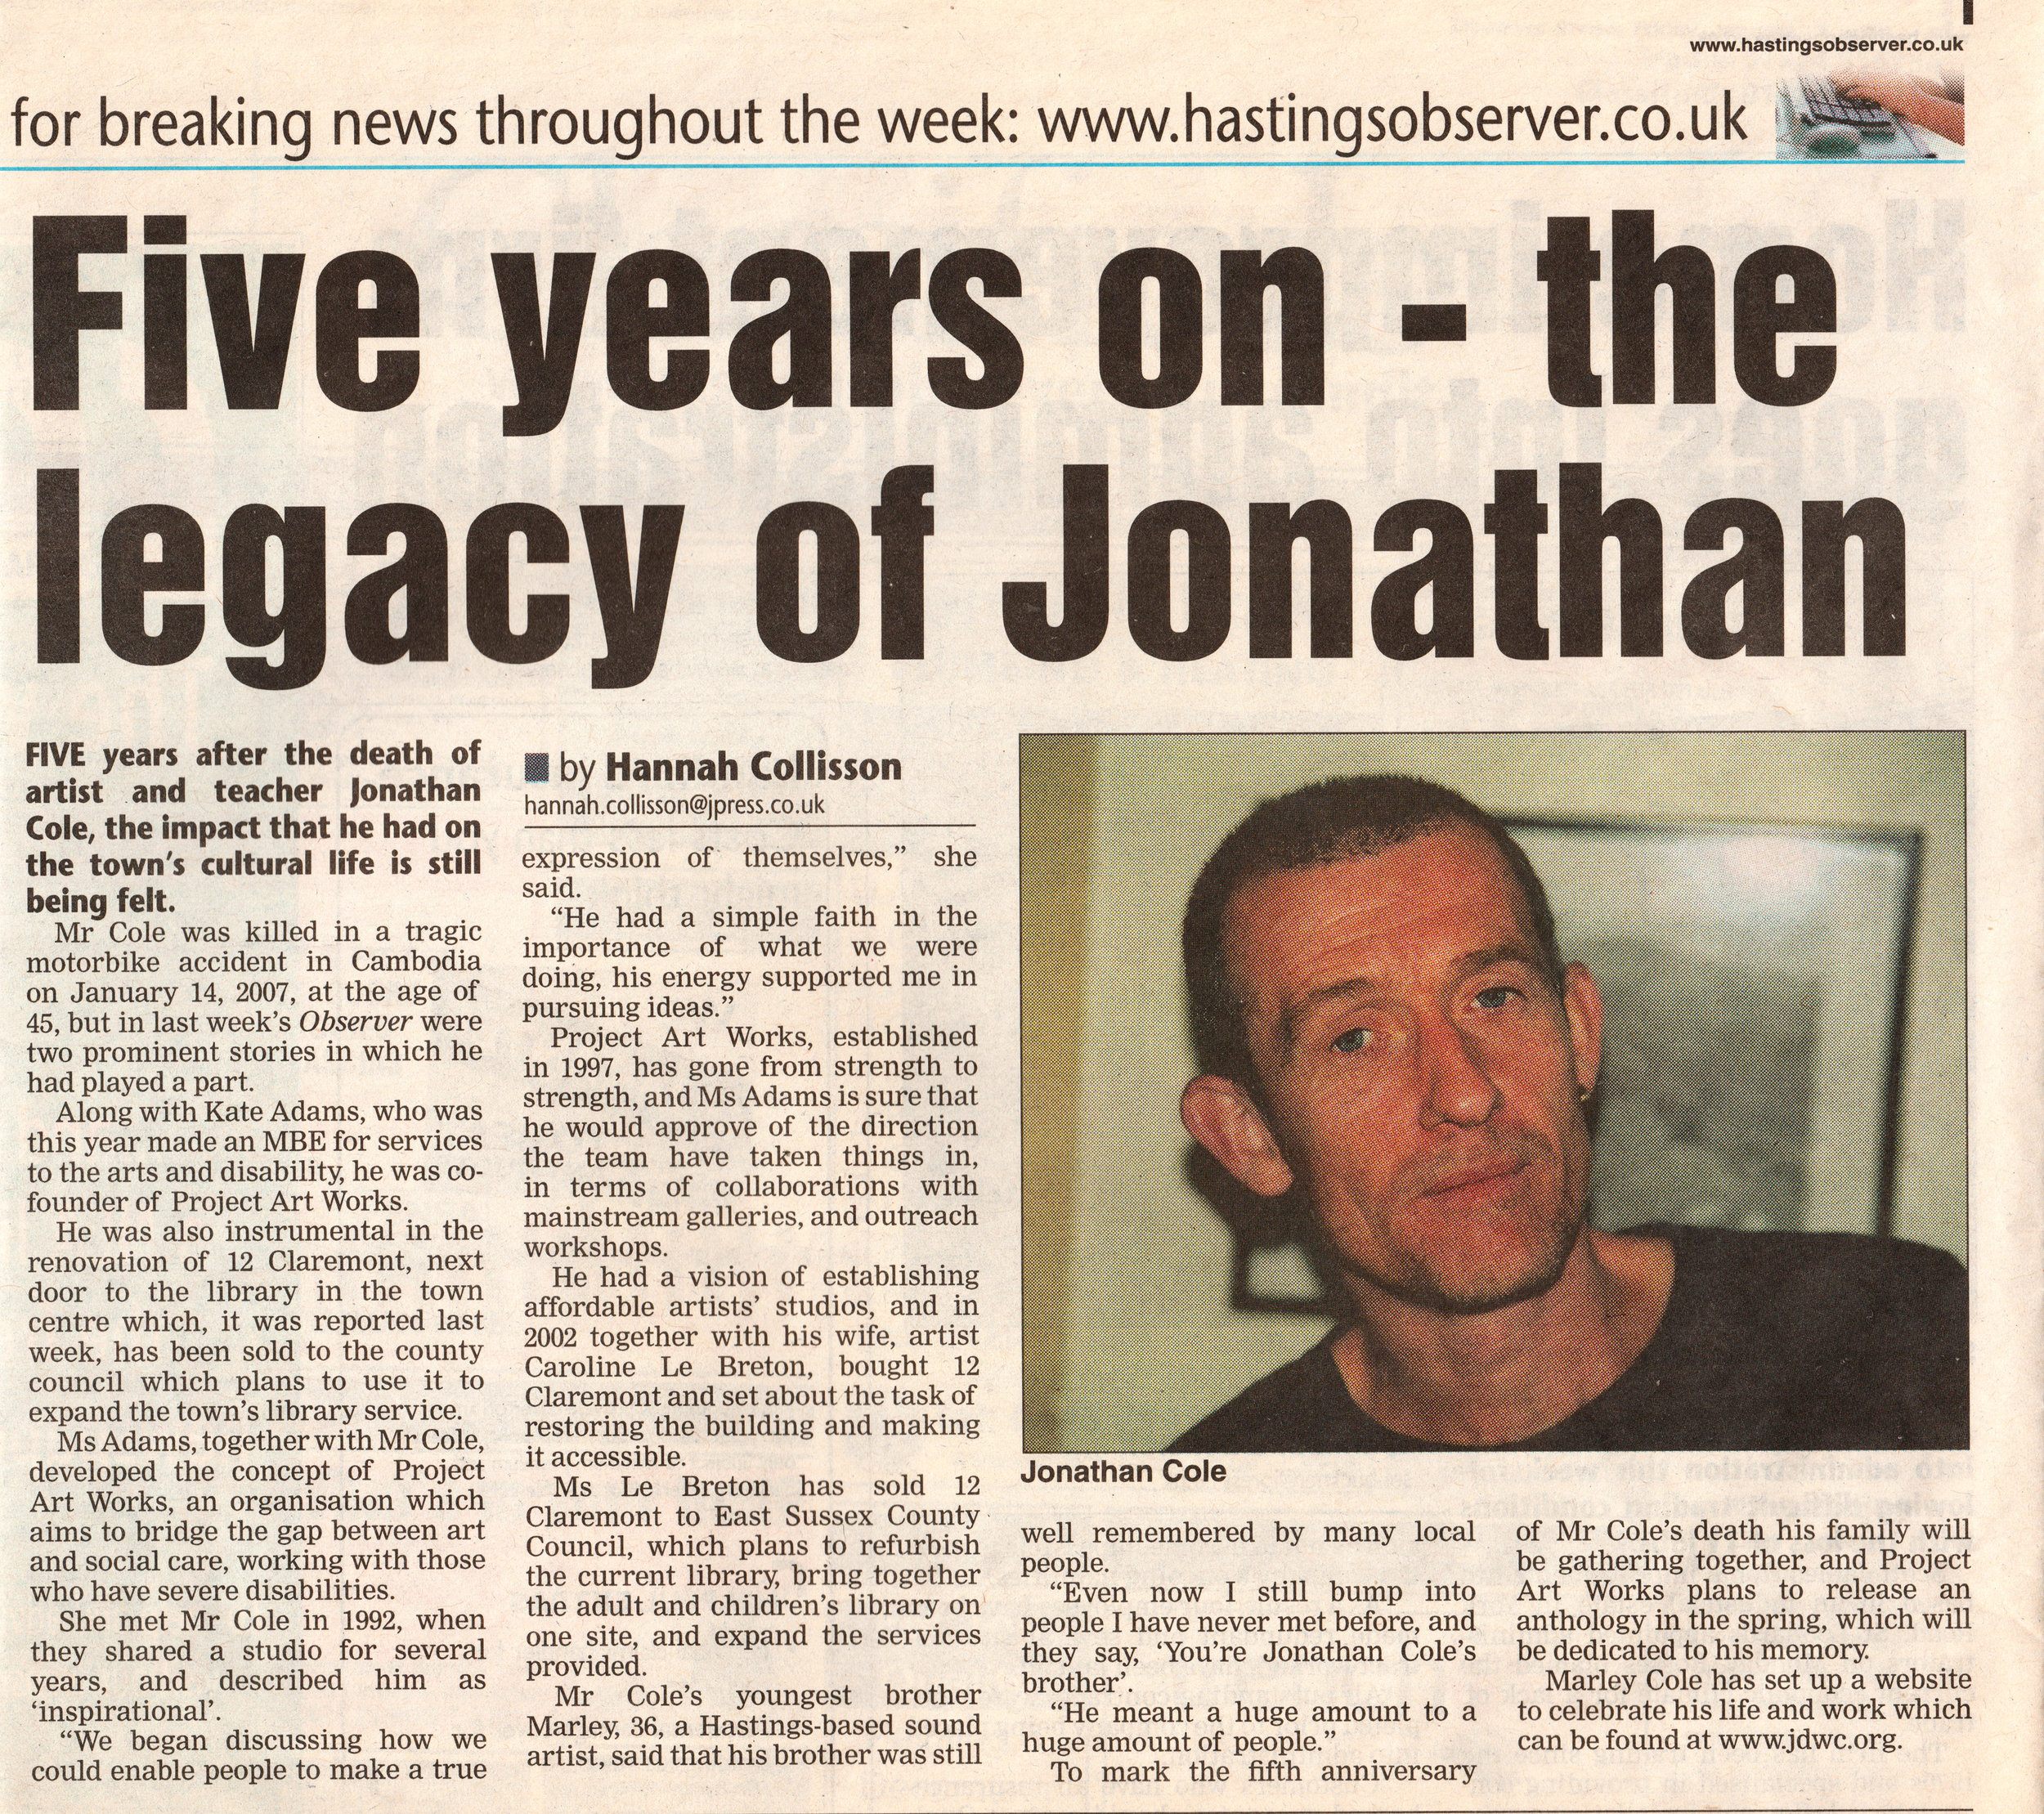 Hastings Observer JDWC 5 years on